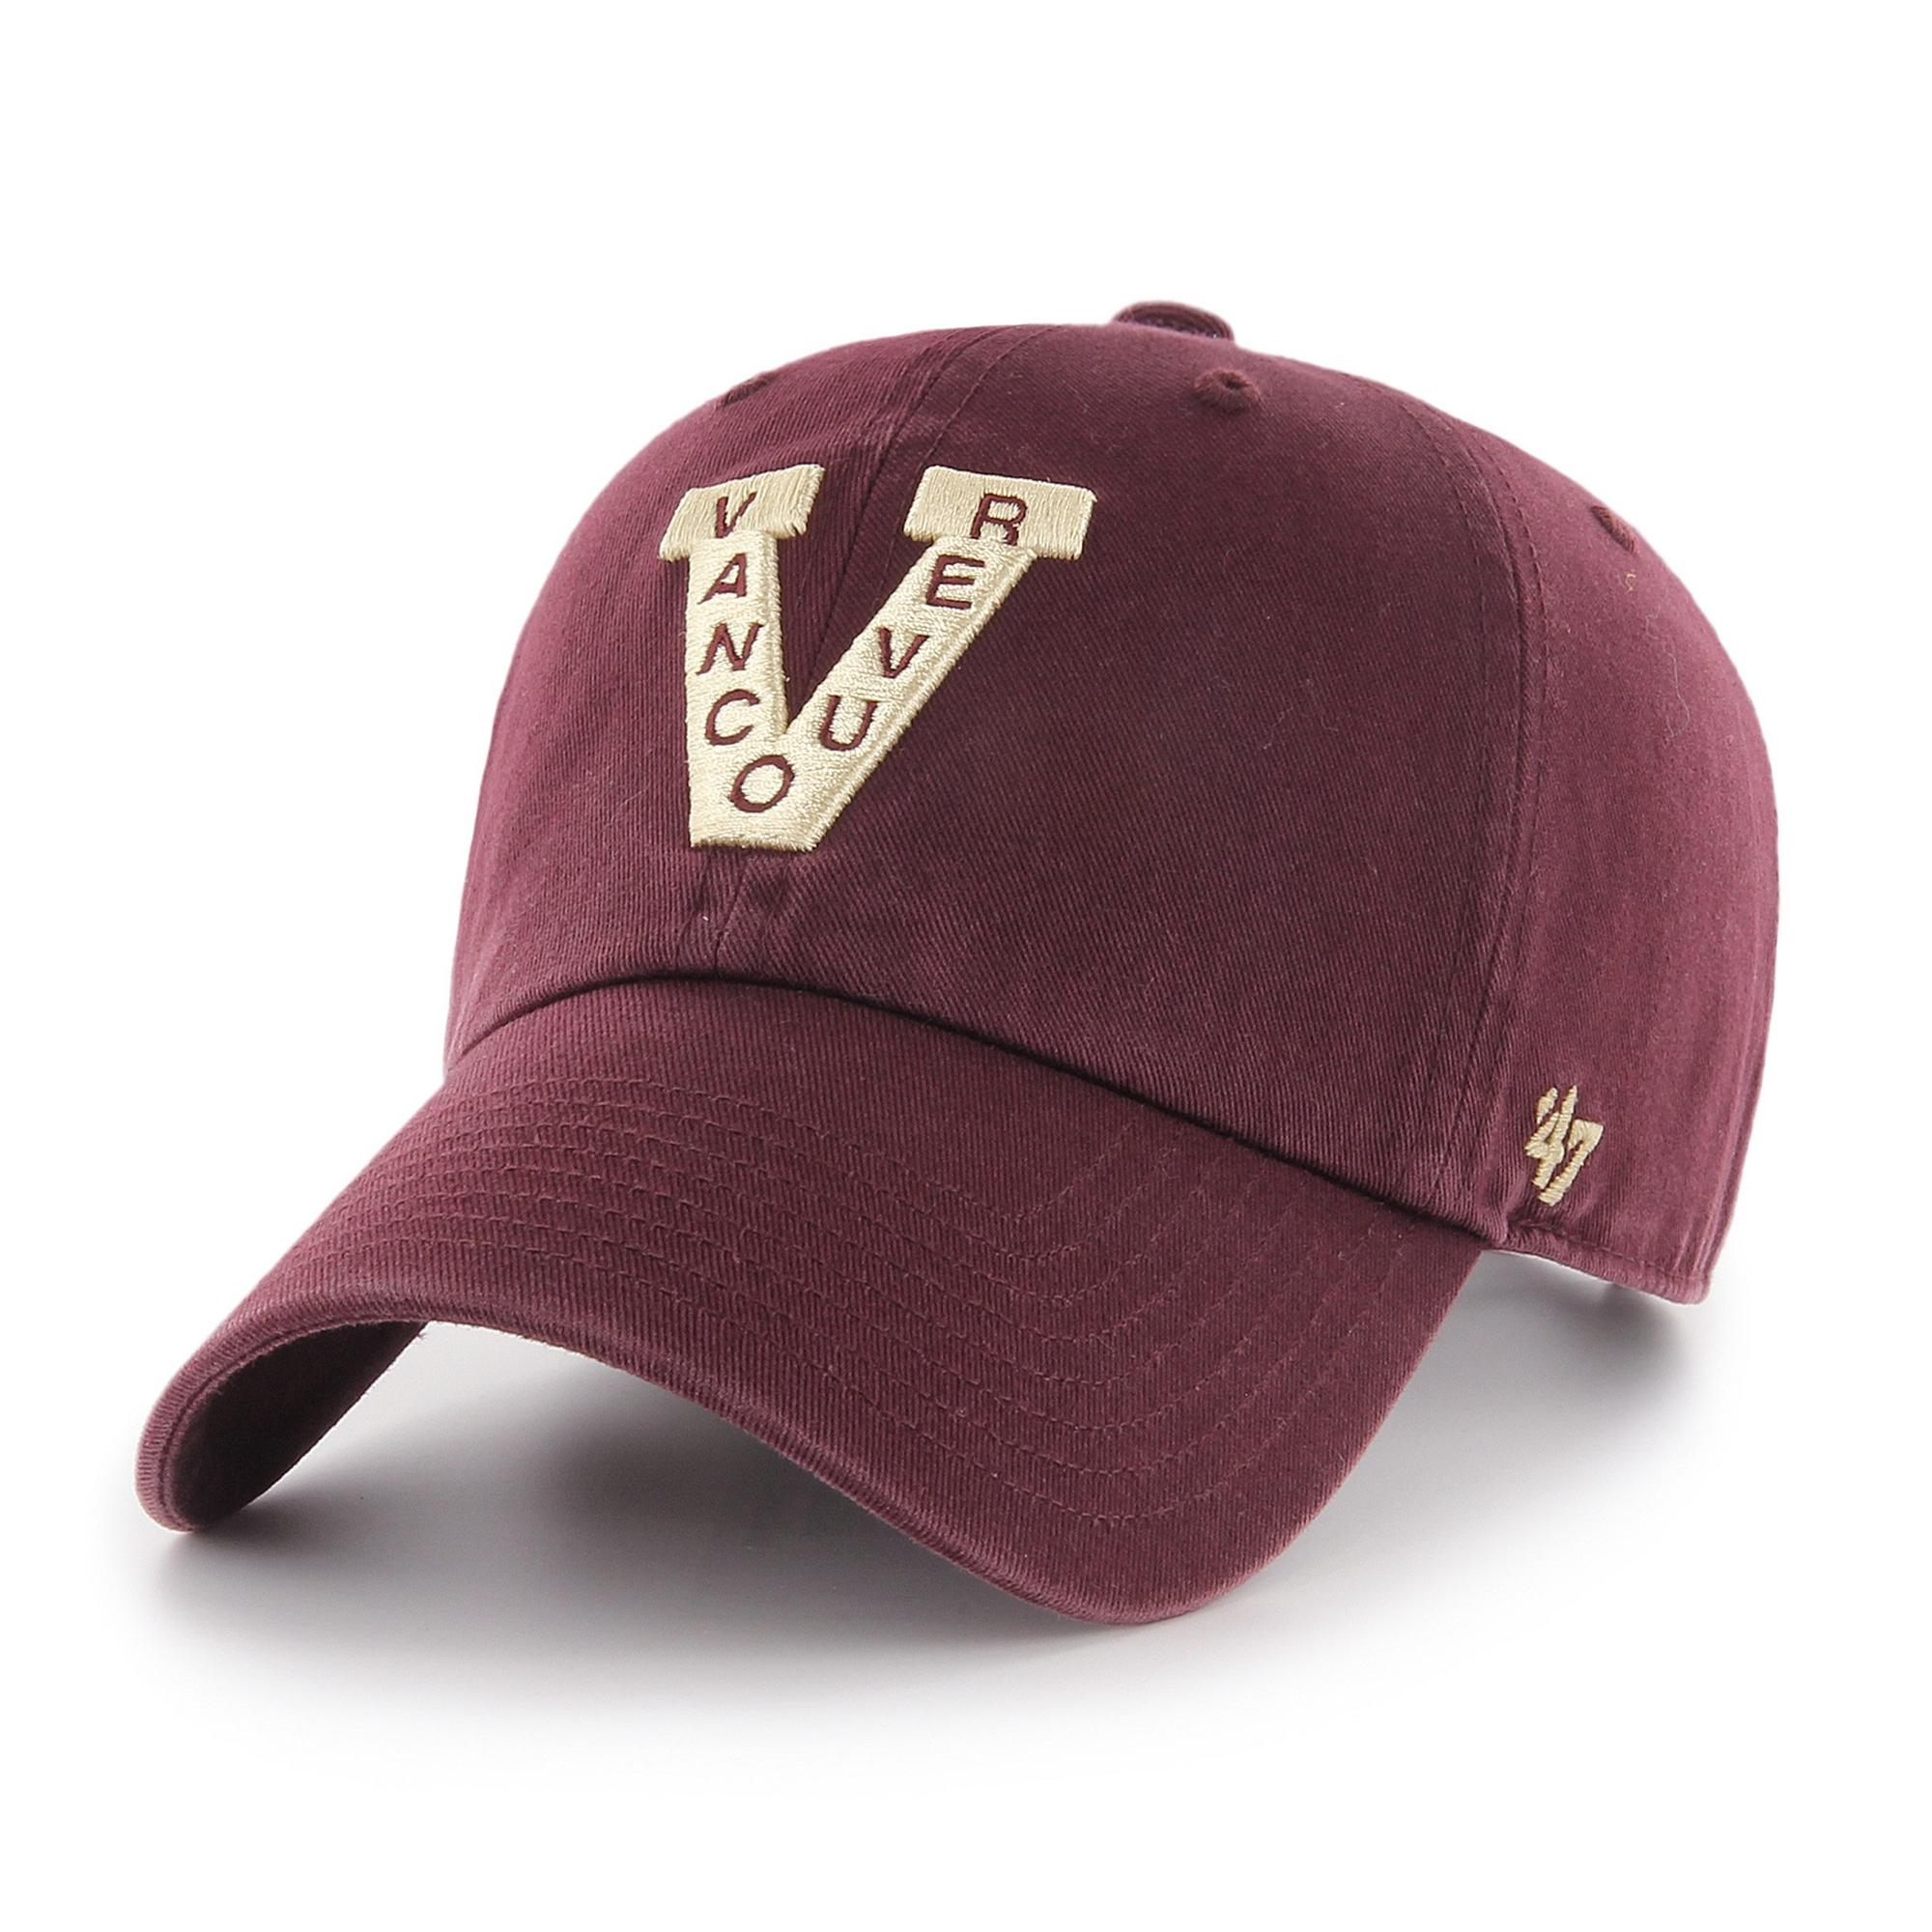 Men's Vancouver Canucks Clean Up Cap